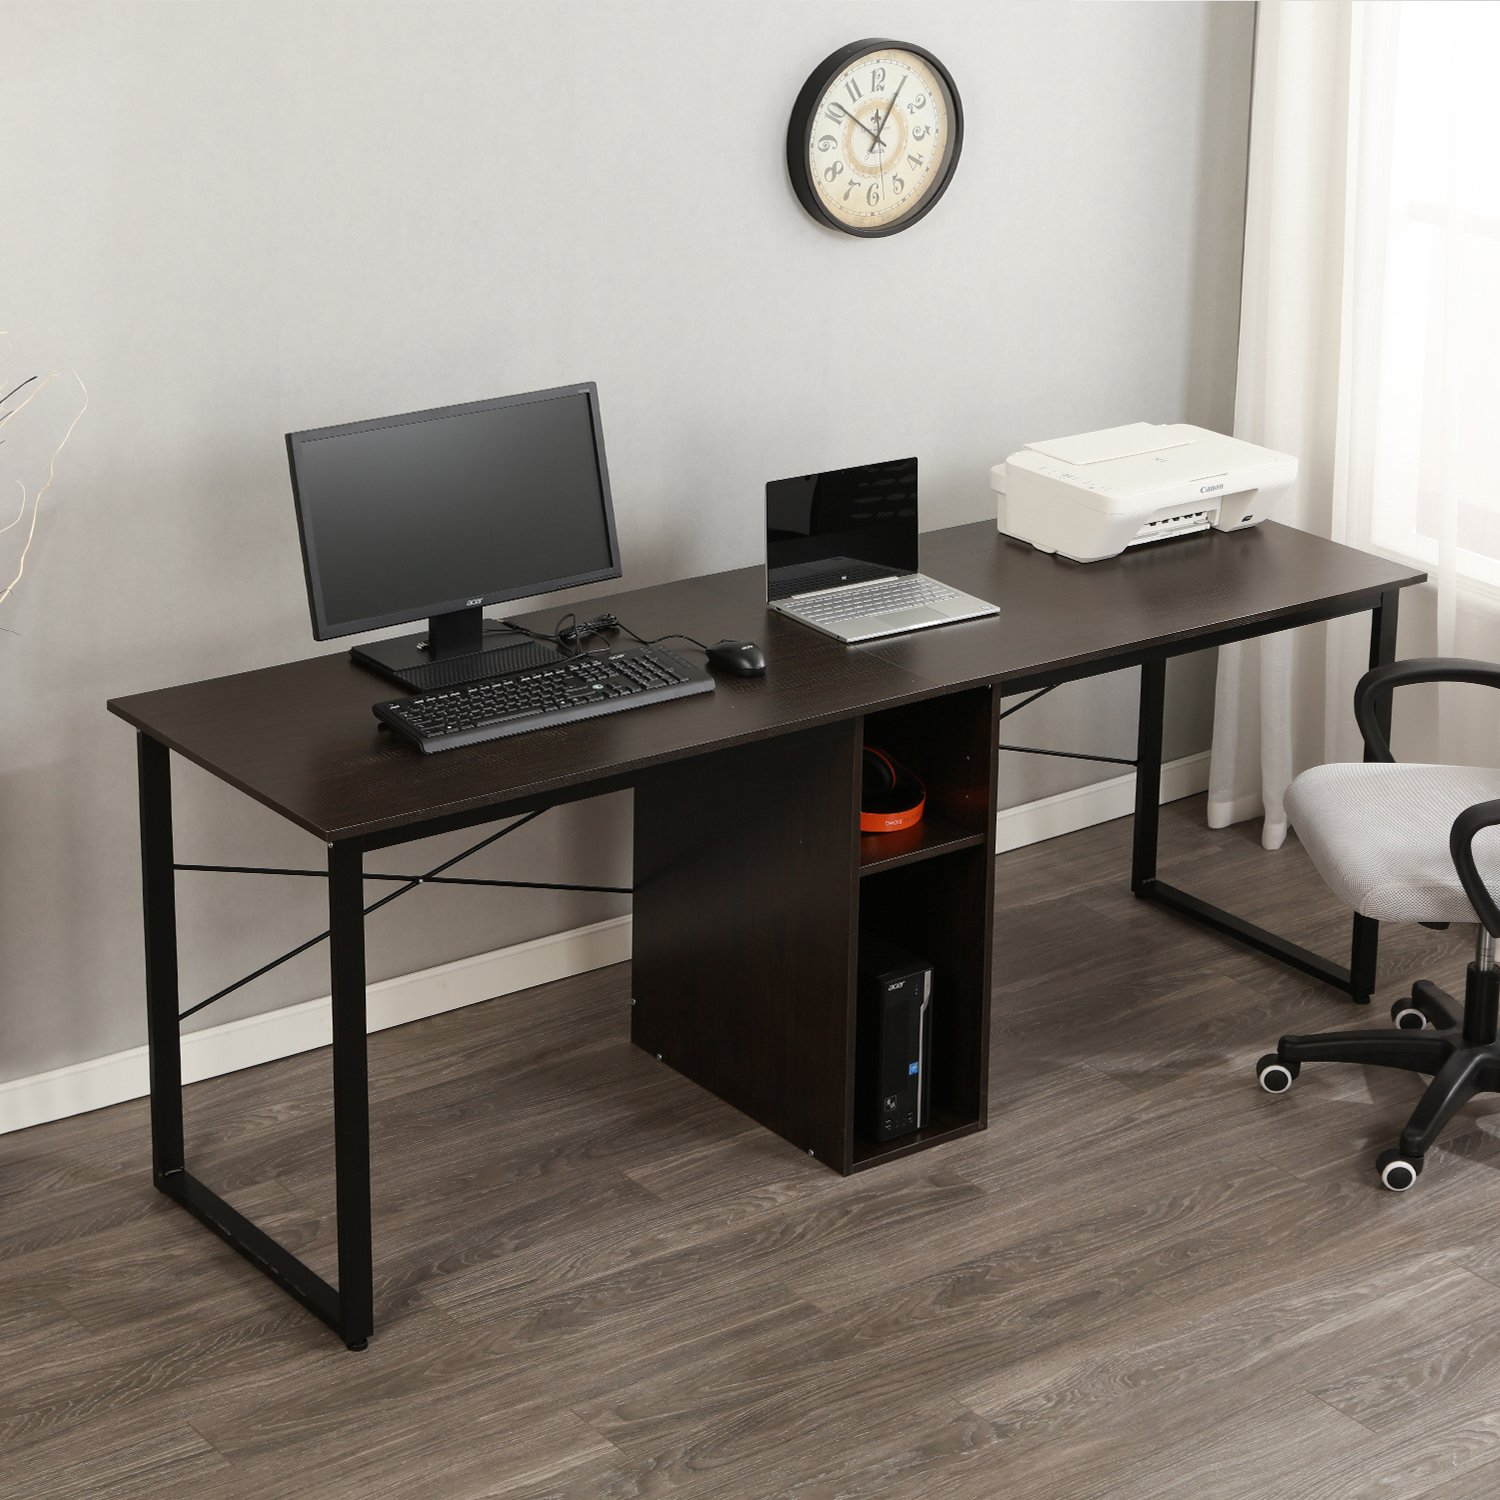 Soges Large Double Workstation Desk, 78 inches Dual Desk 2-Person Computer Desk, Home/Office Desk/Writing Desk with Shared Storage, Black LD-H01 by soges